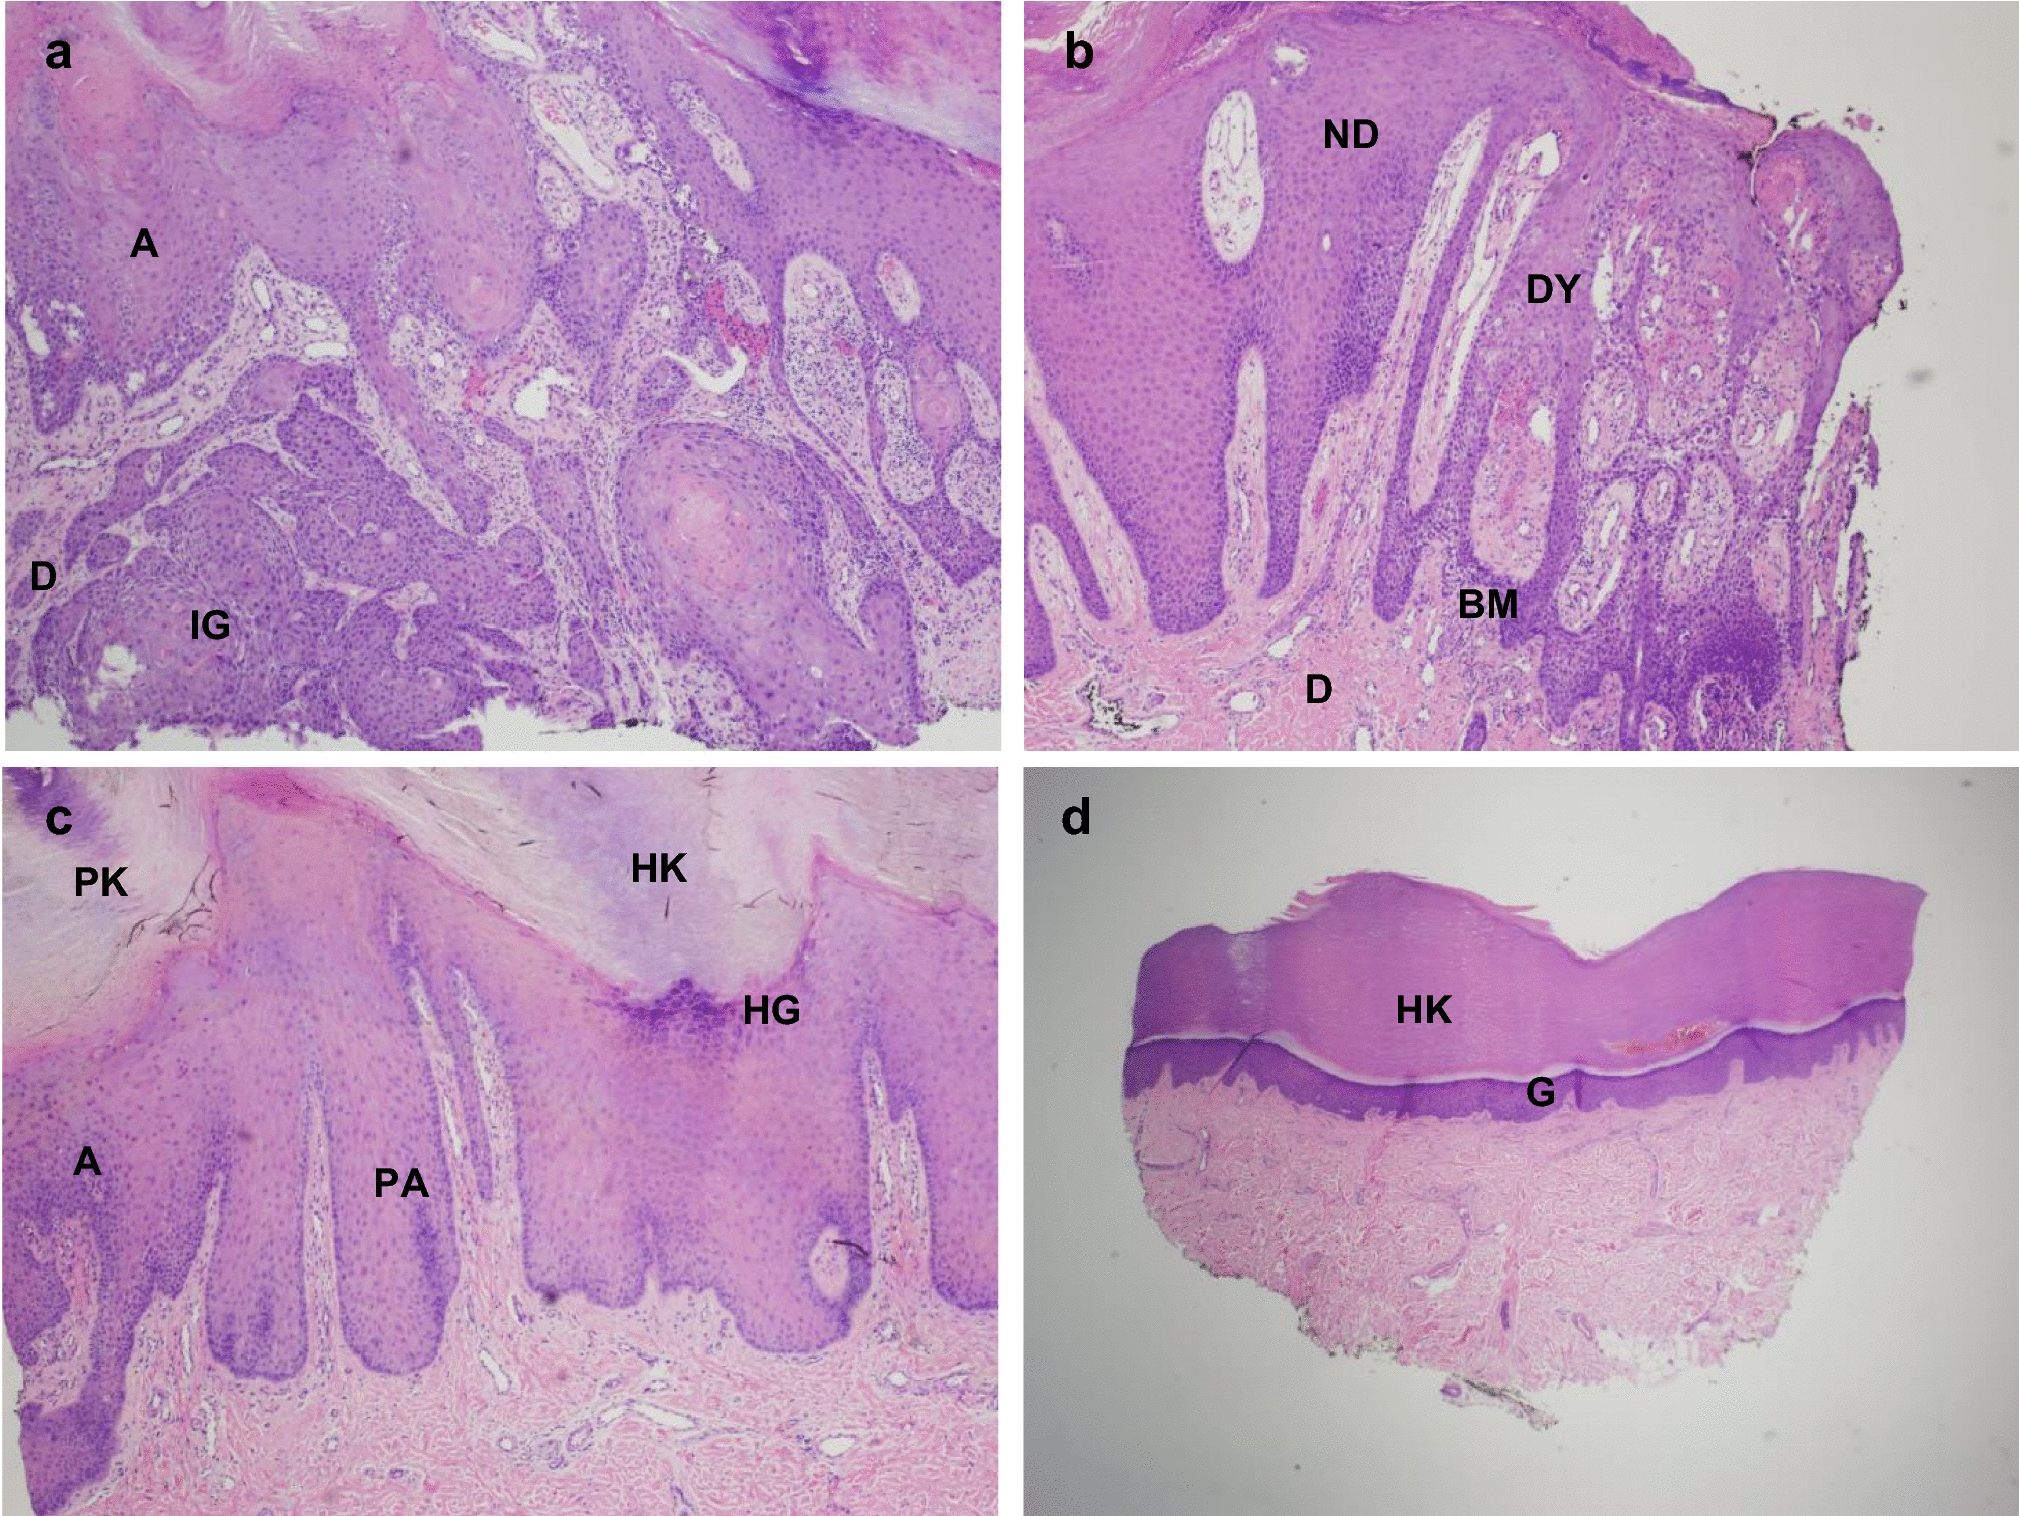 Development of cutaneous squamous cell carcinoma after